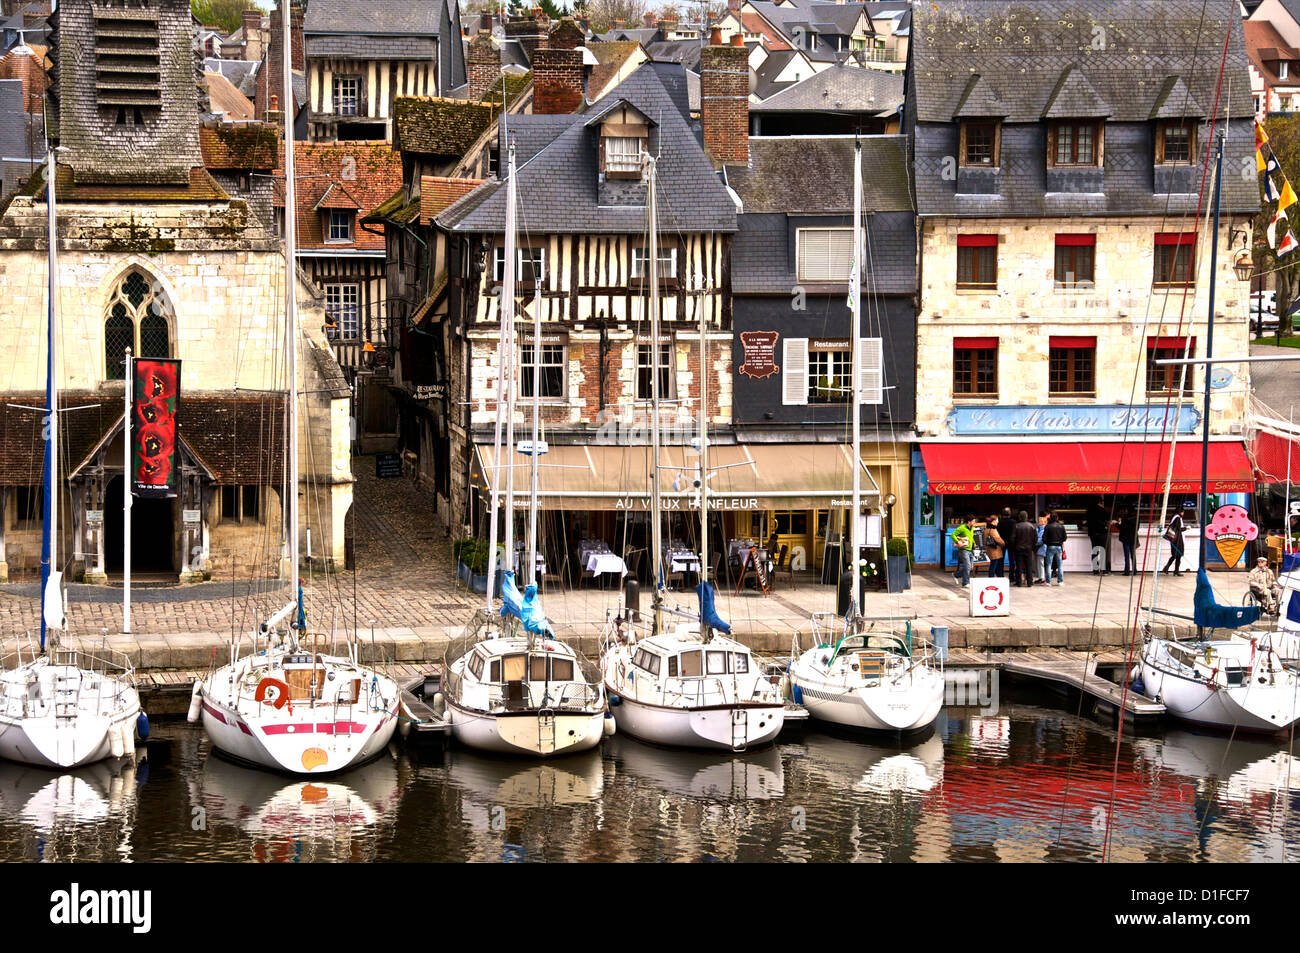 The Vieux Bassin, Saint Etienne church on the left, and boats moored along the quay, Honfleur, Calvados, Normandy, - Stock Image